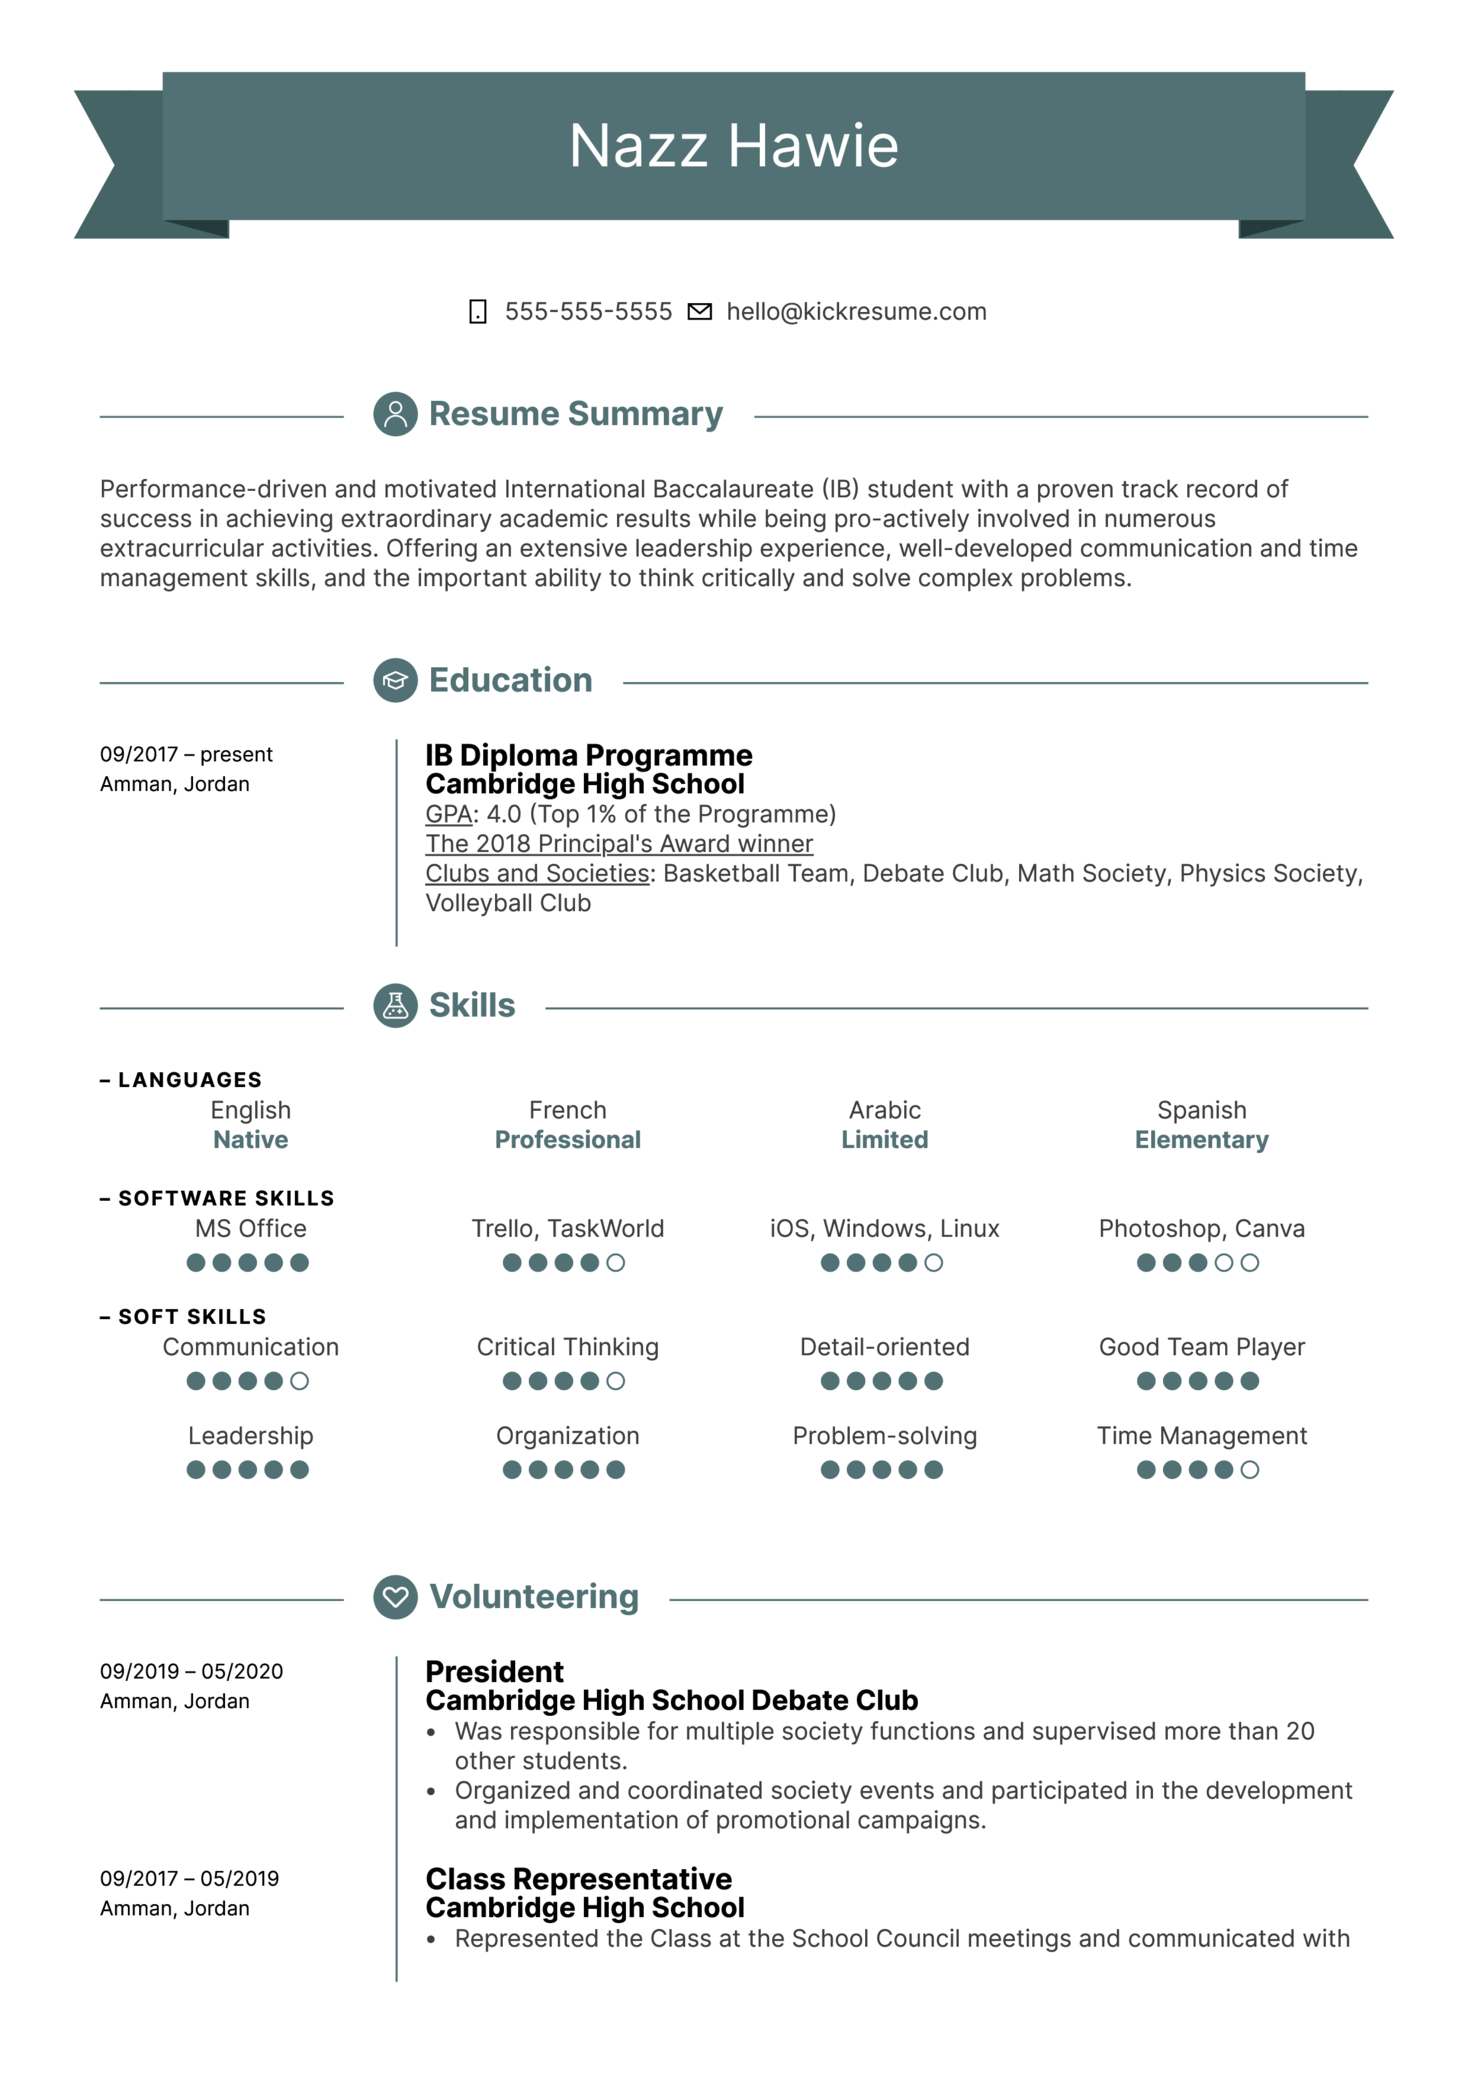 First Job Resume Template Kickresume